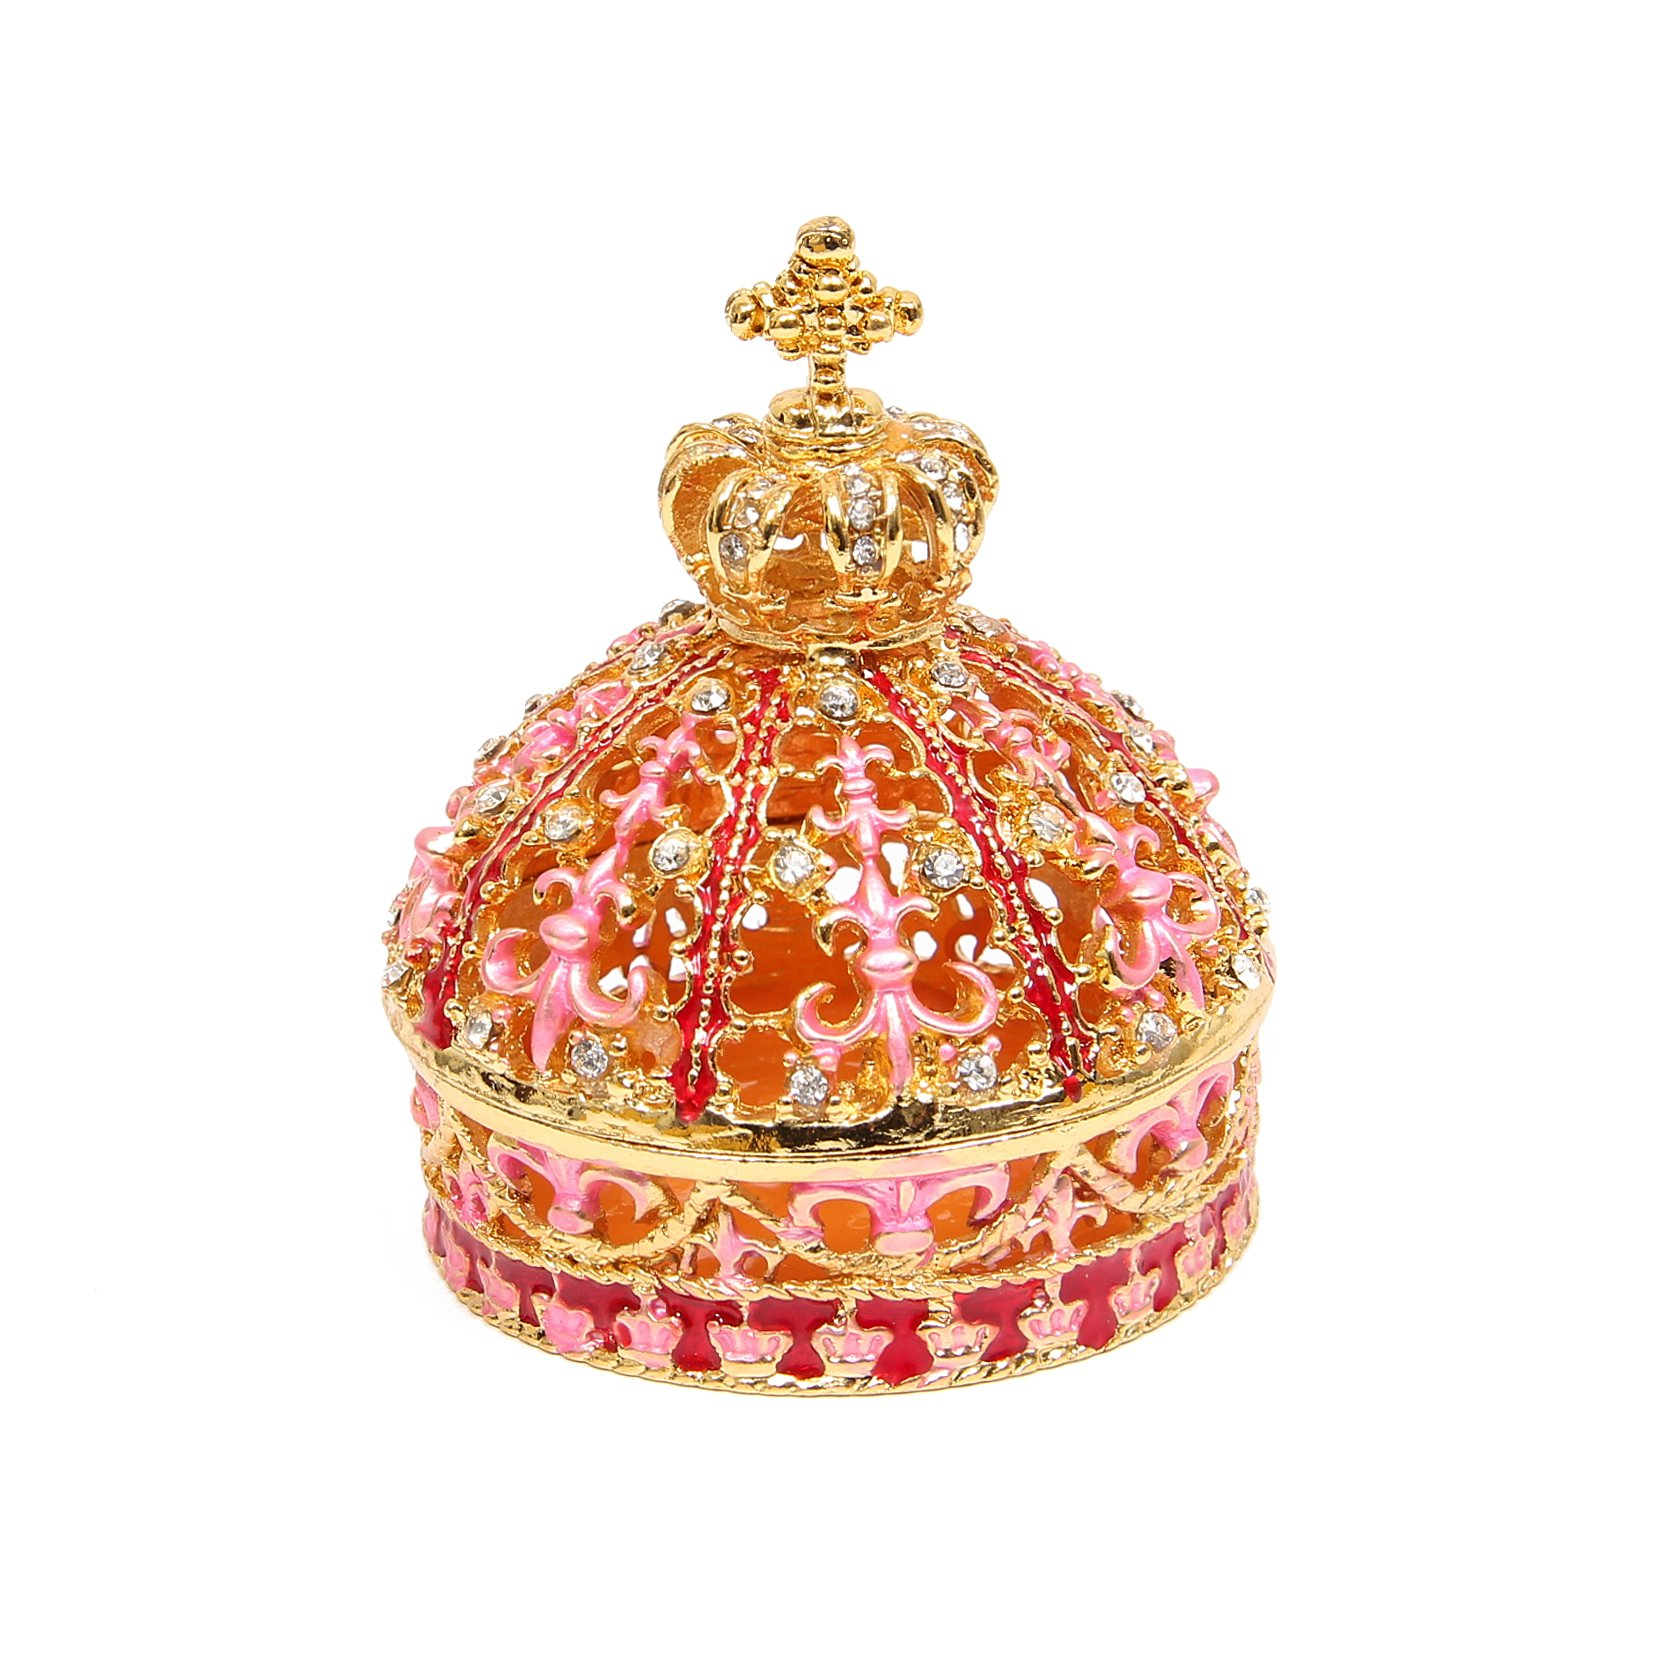 QIFU-Hand Painted Enameled Crown Decorative Hinged Jewelry Trinket Box Unique Gift For Home Decor